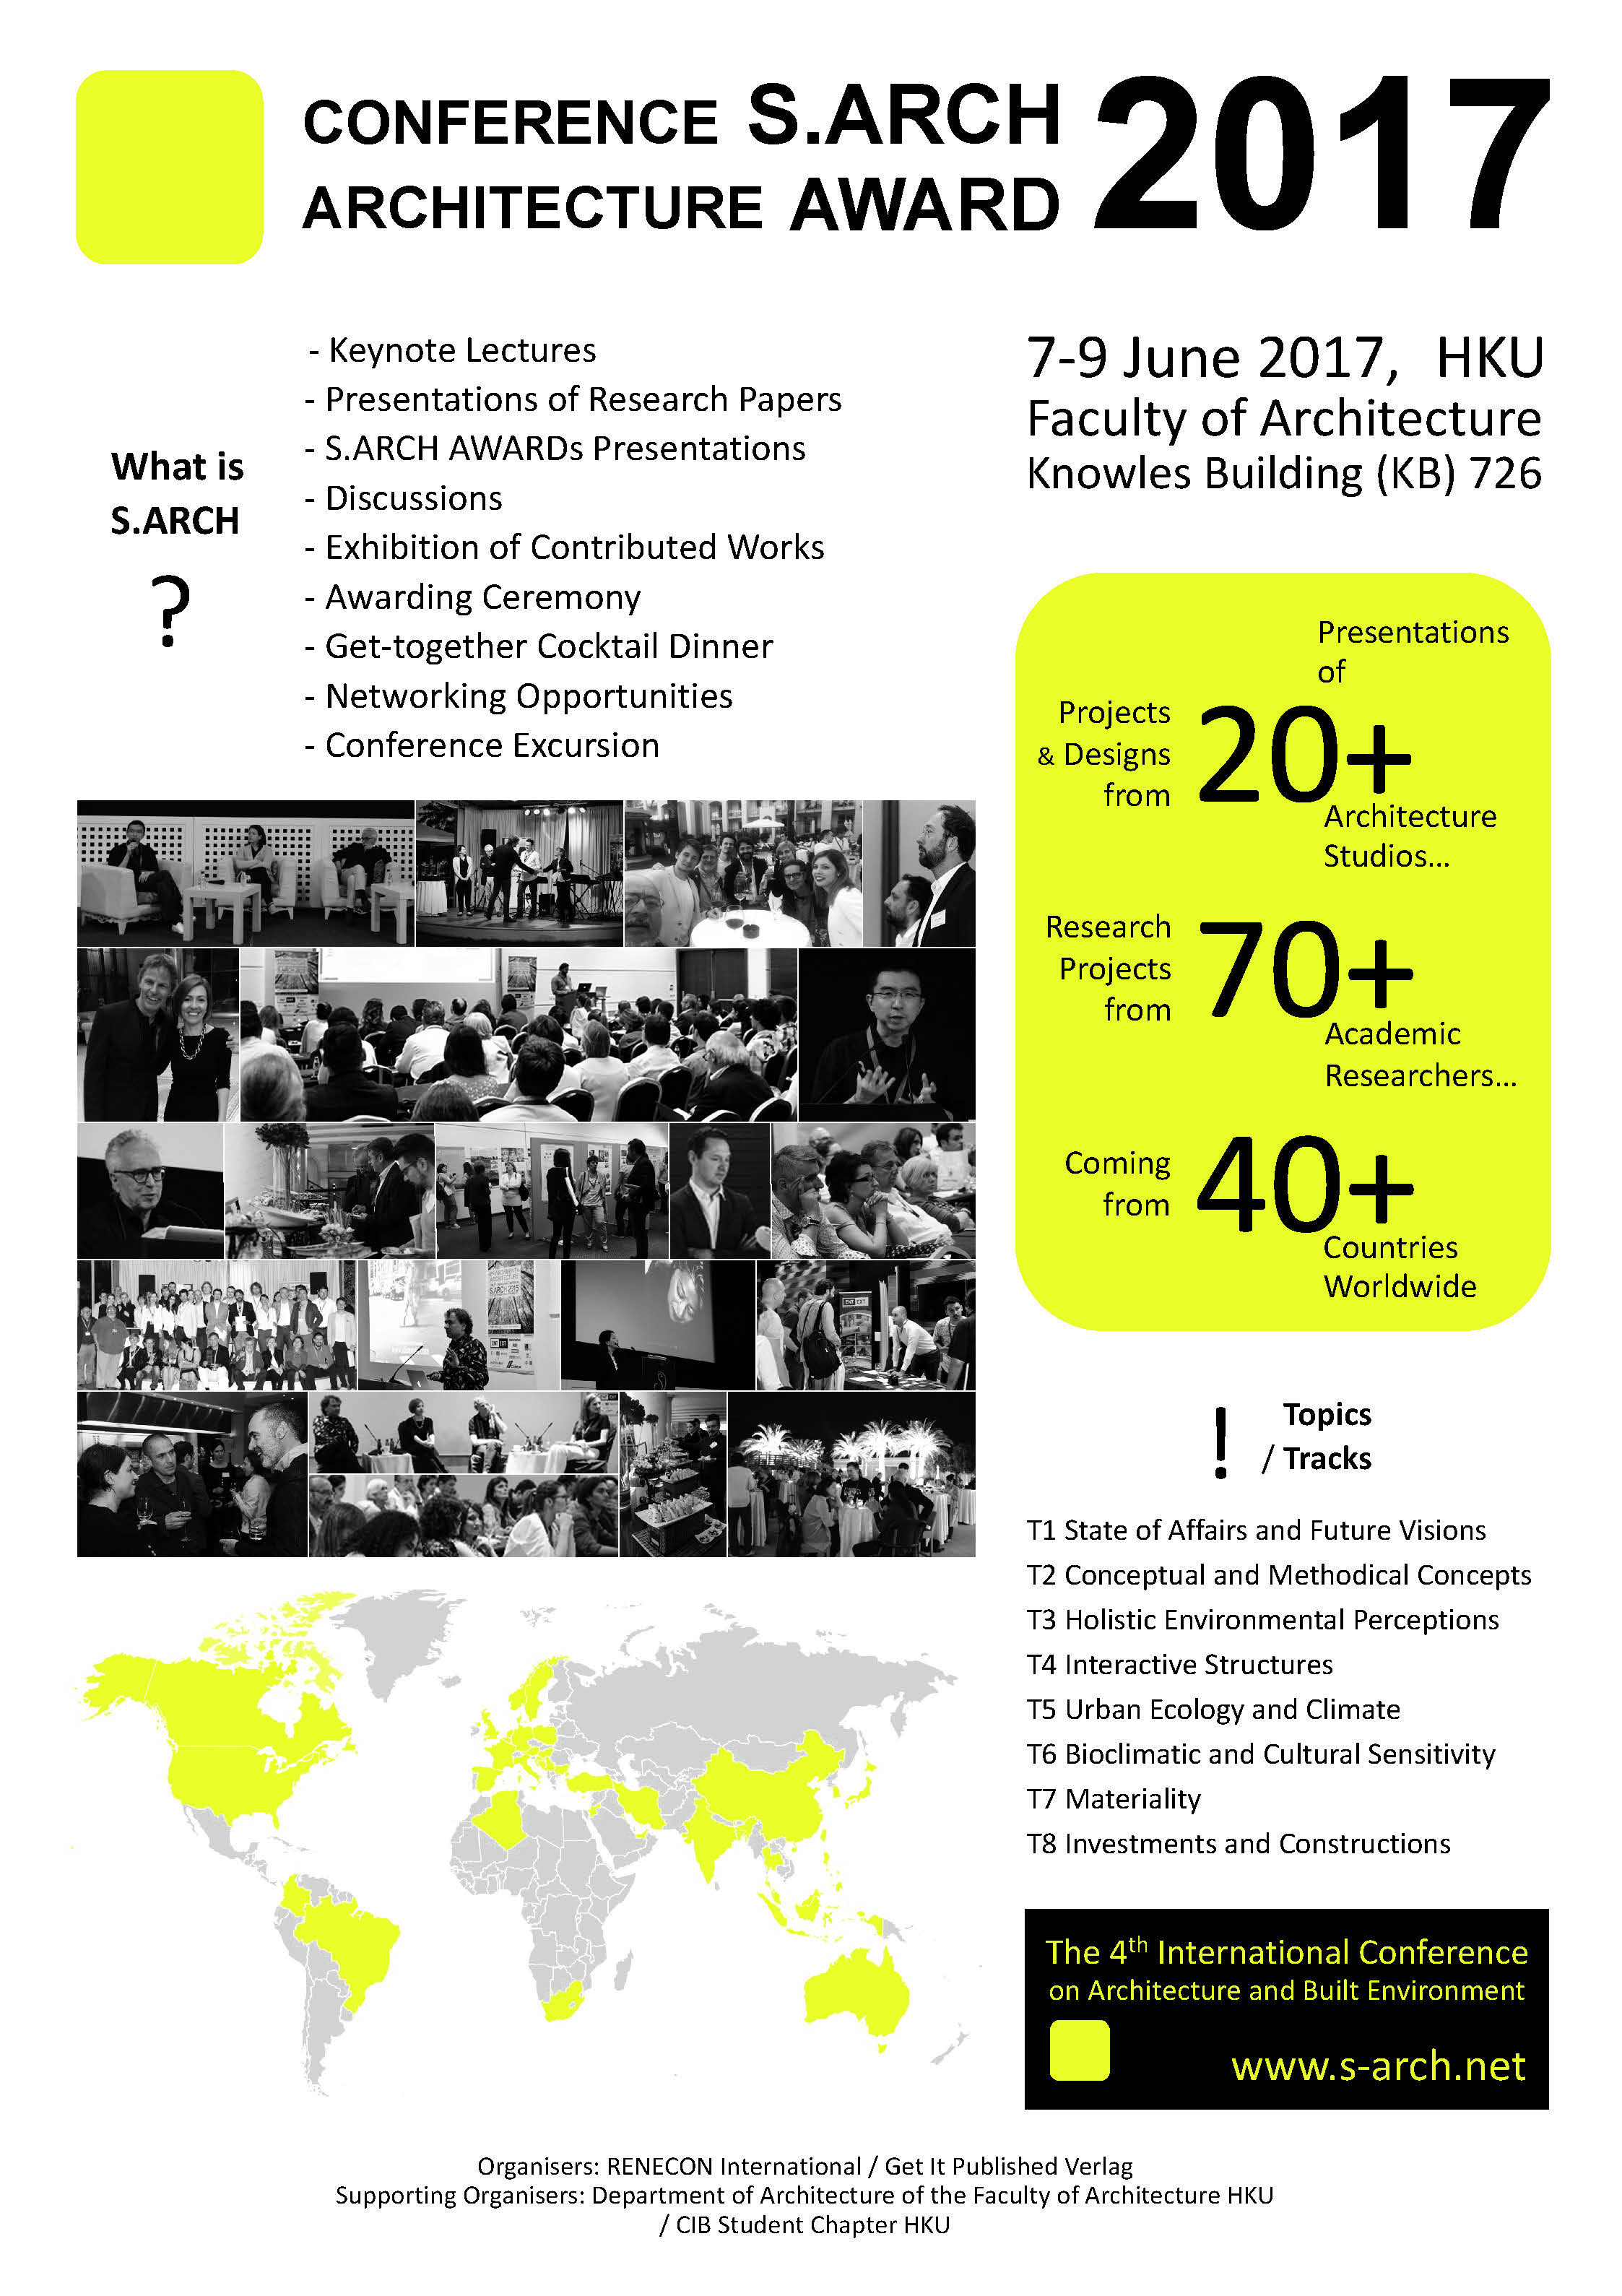 The 4th International ARCHITECTURE Conference with AWARDs – S.ARCH 2017